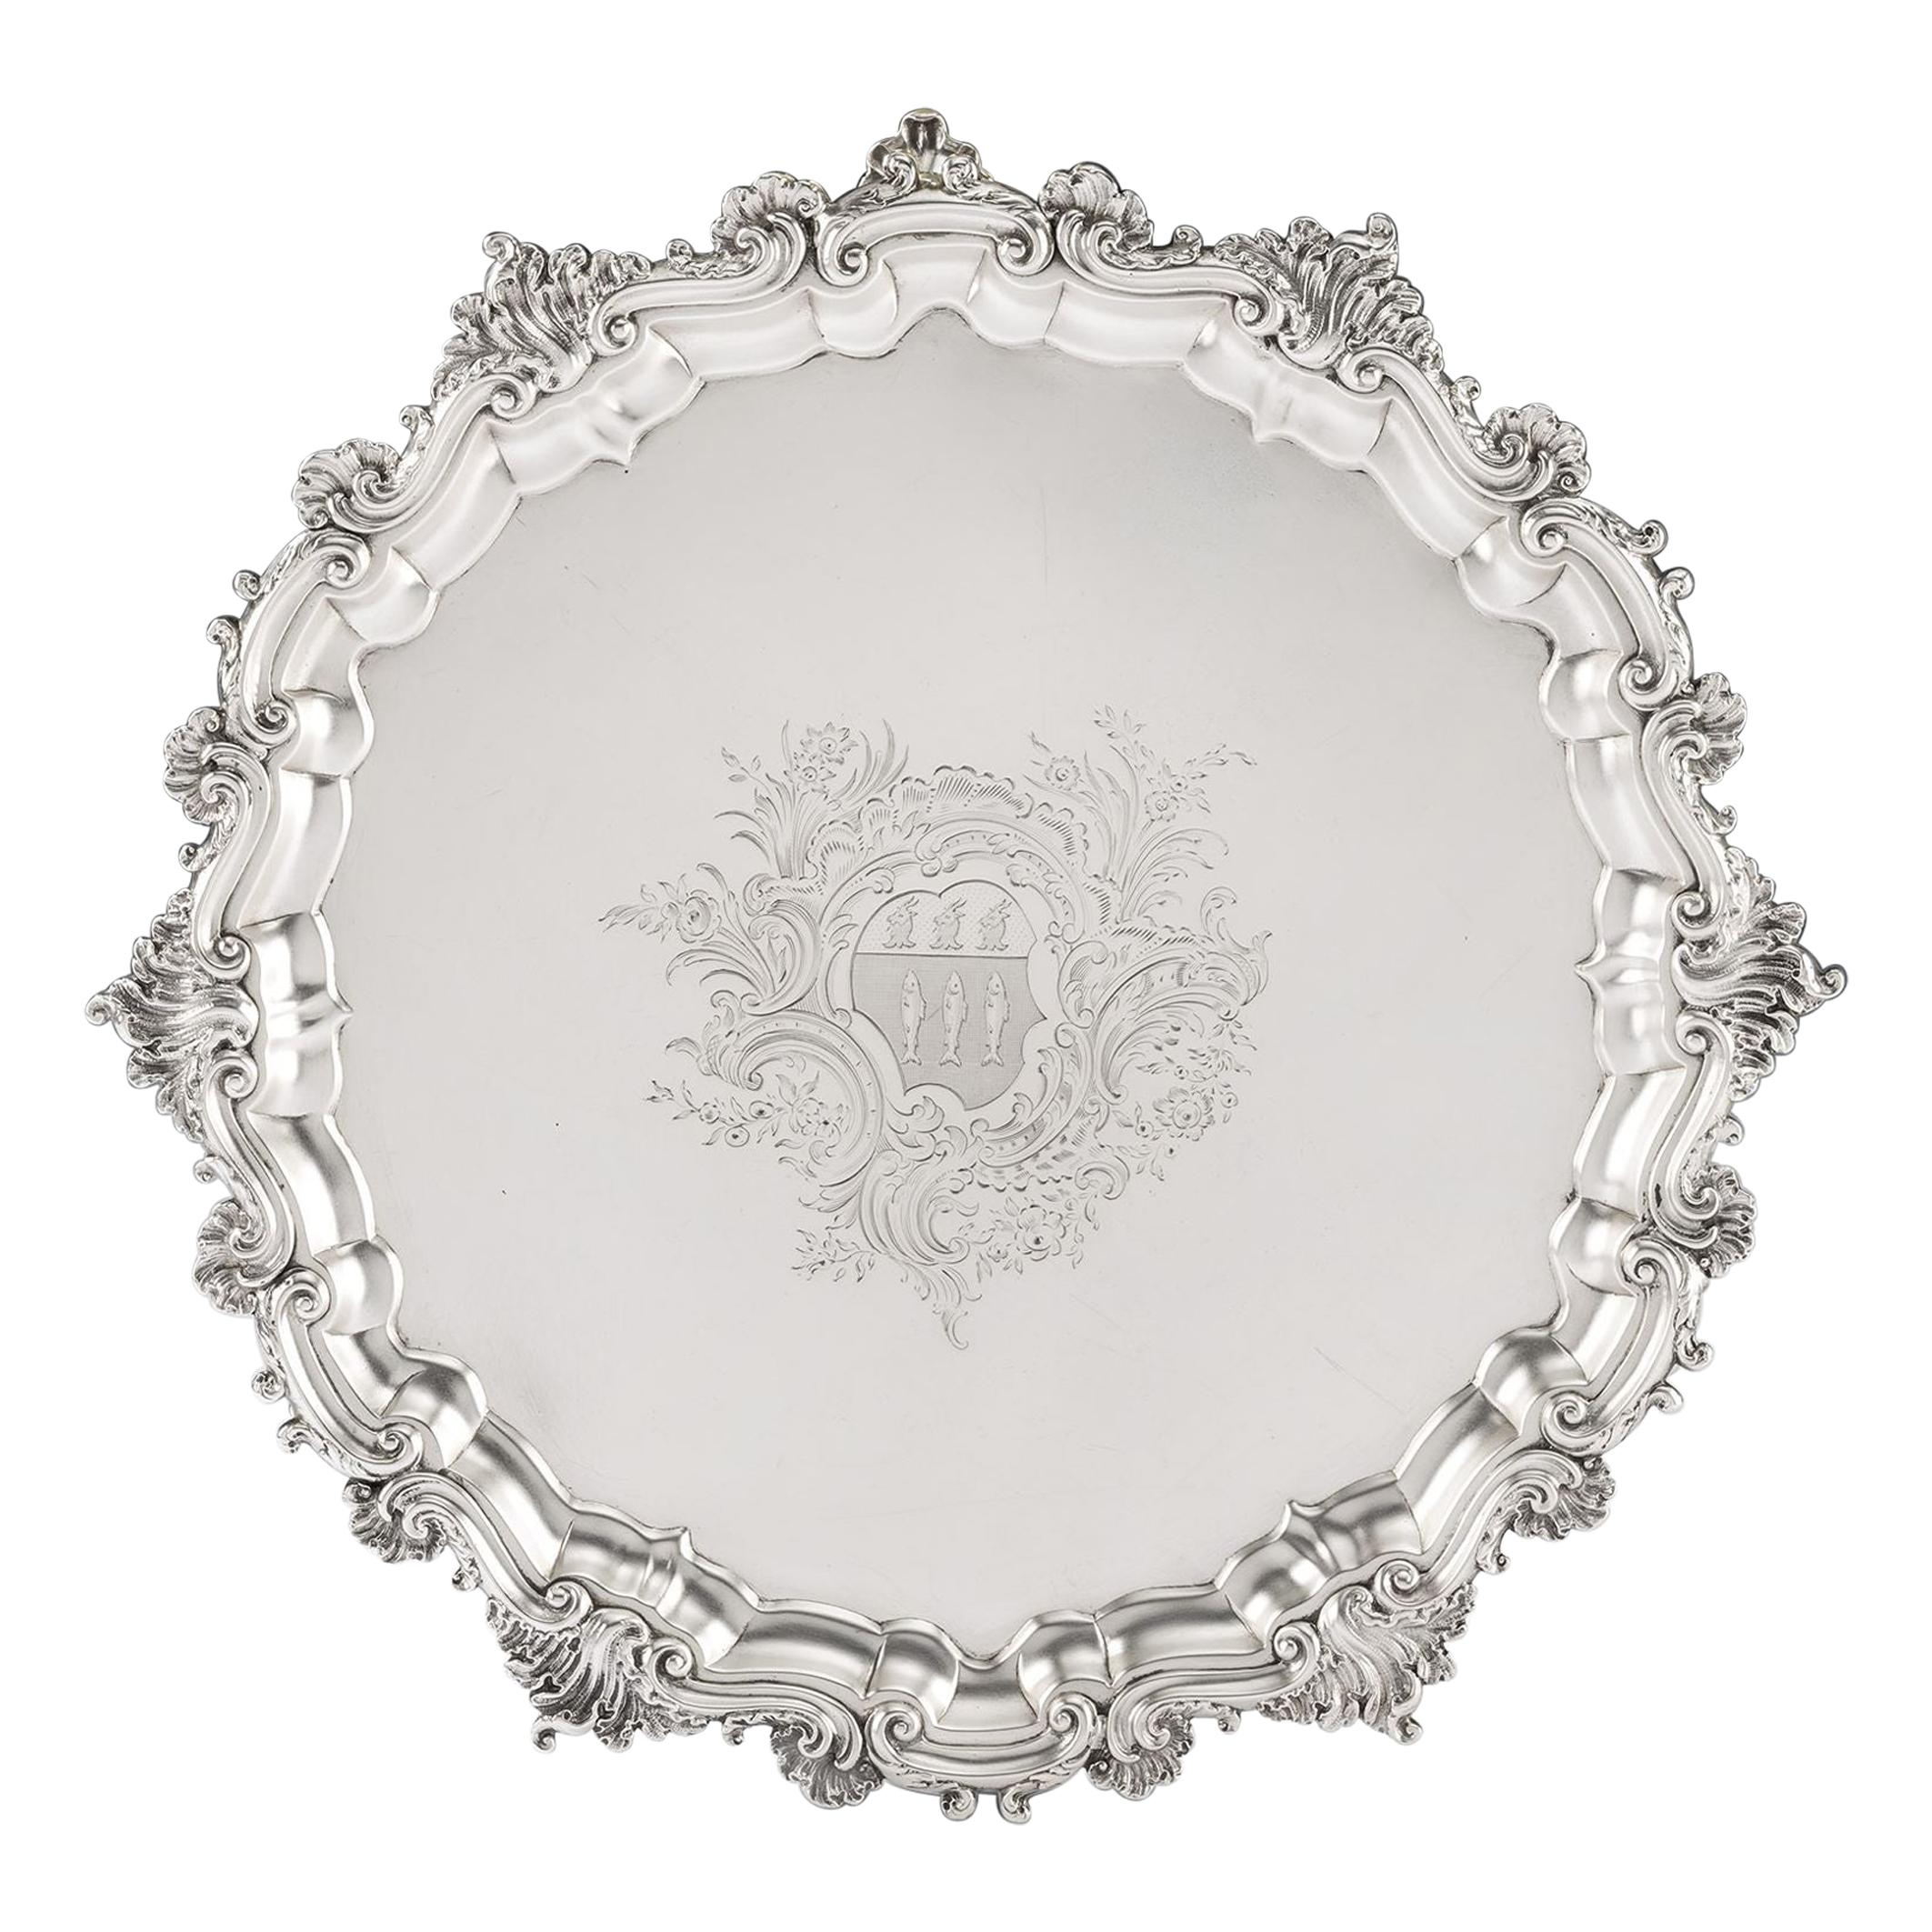 George II Rococo Salver Made in London in 1746 by John Swift